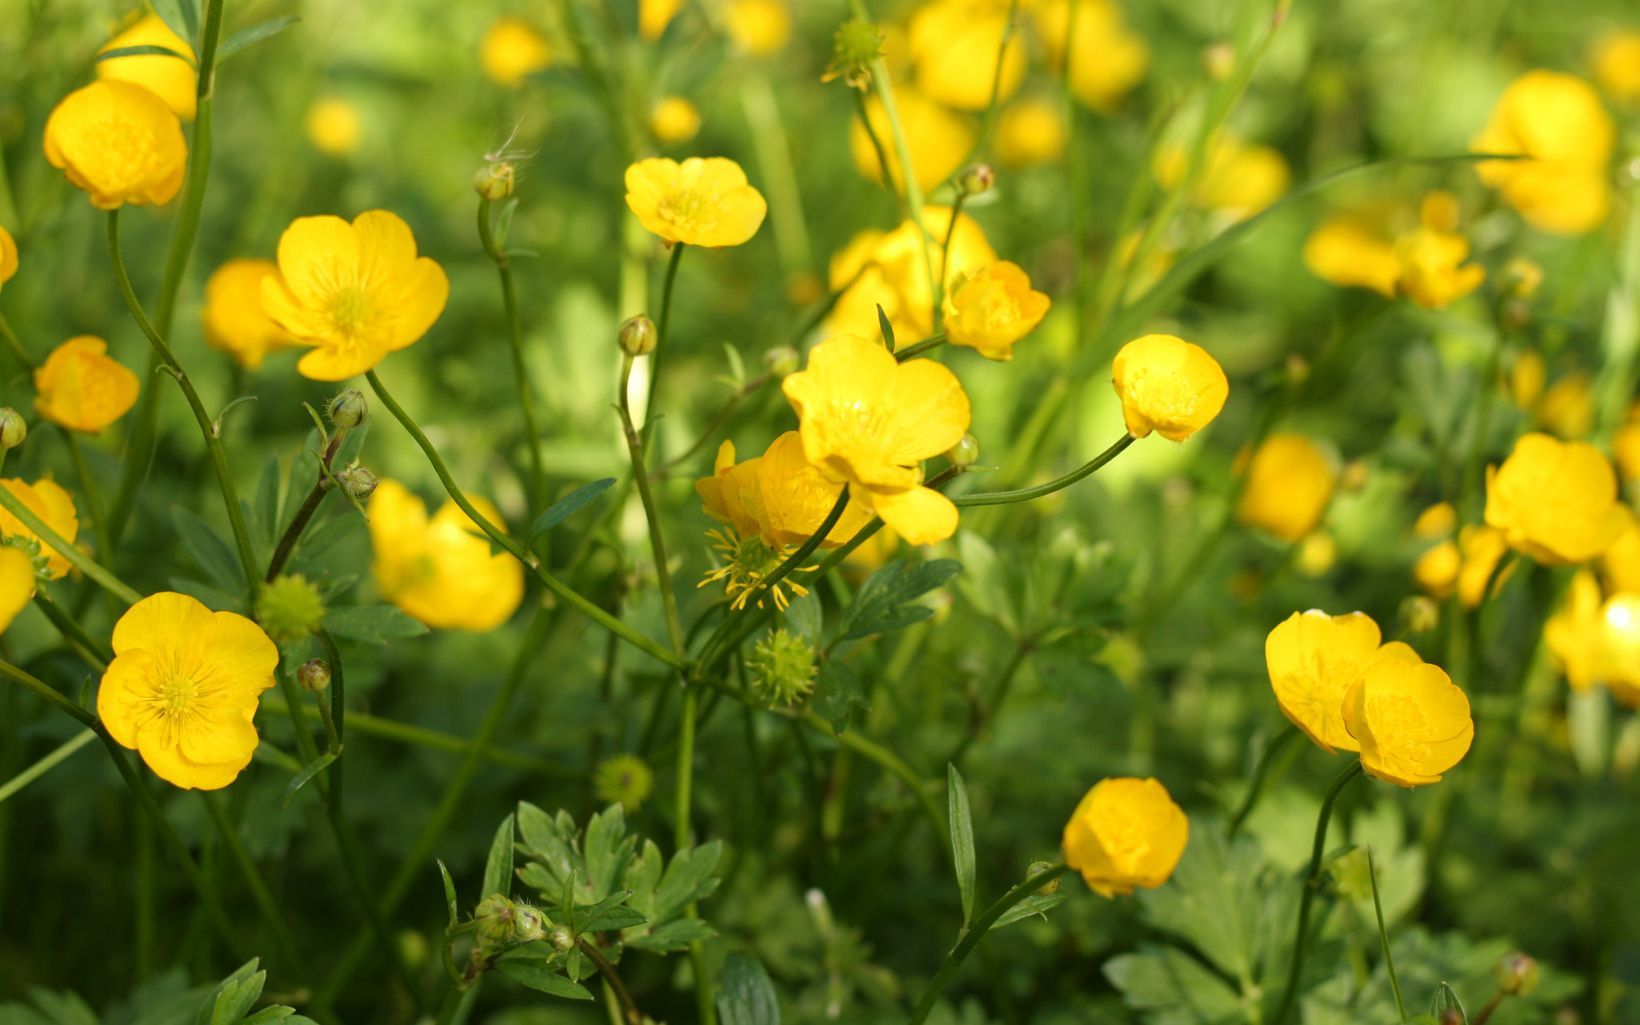 Small, yellow buttercup flowers.